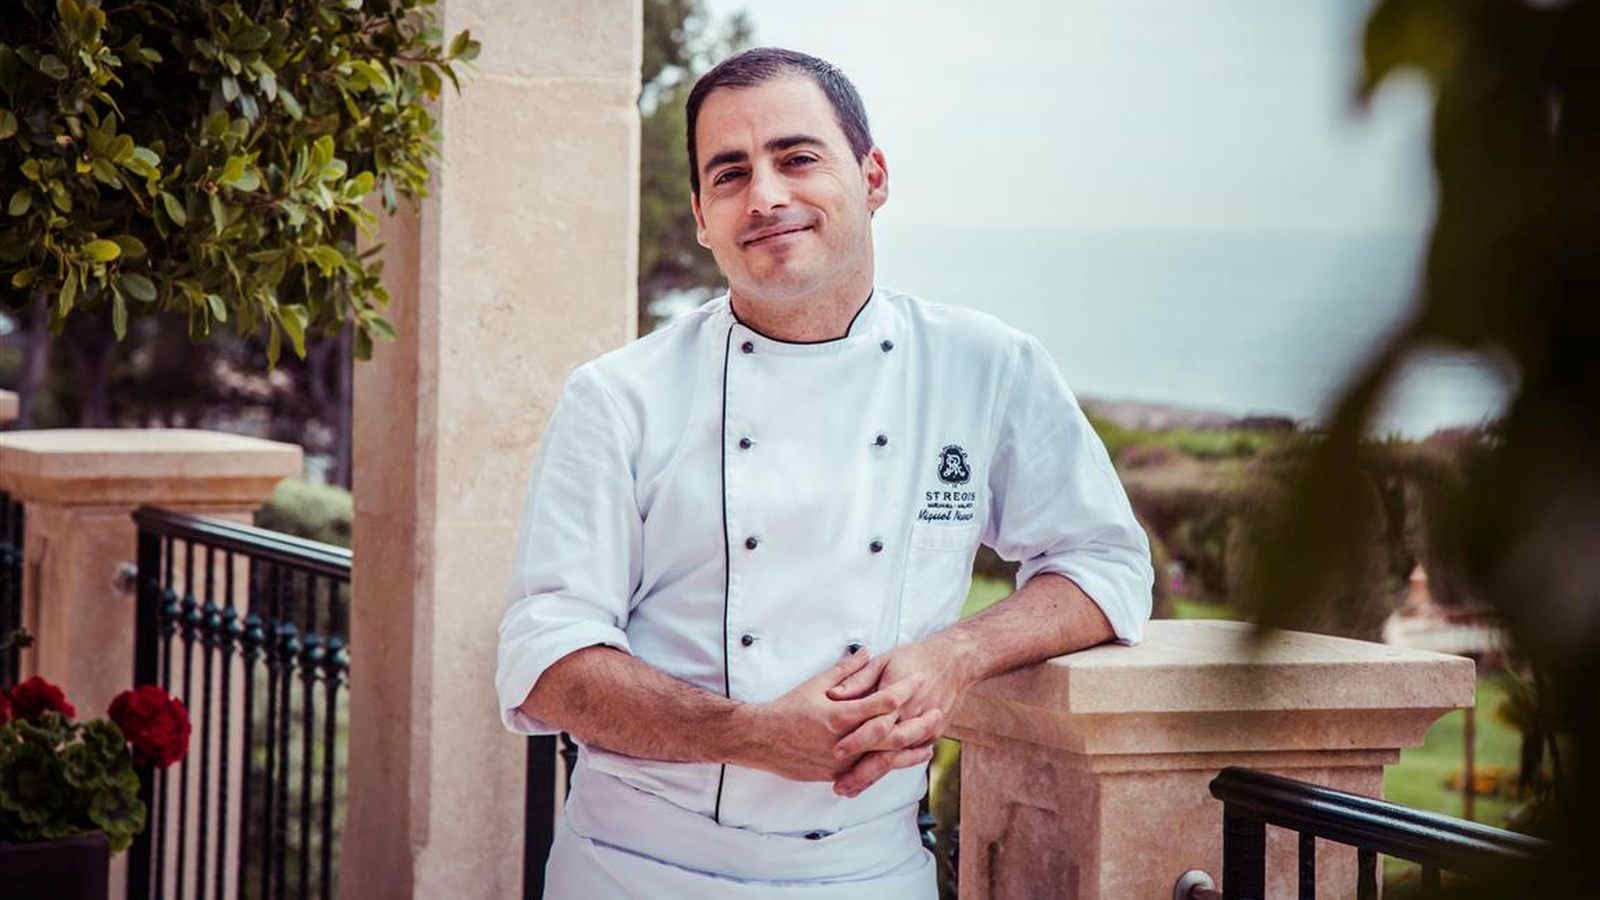 Chef Miguel Navarro The St. Regis Mardavall at the Culinary Safari in Majorca.